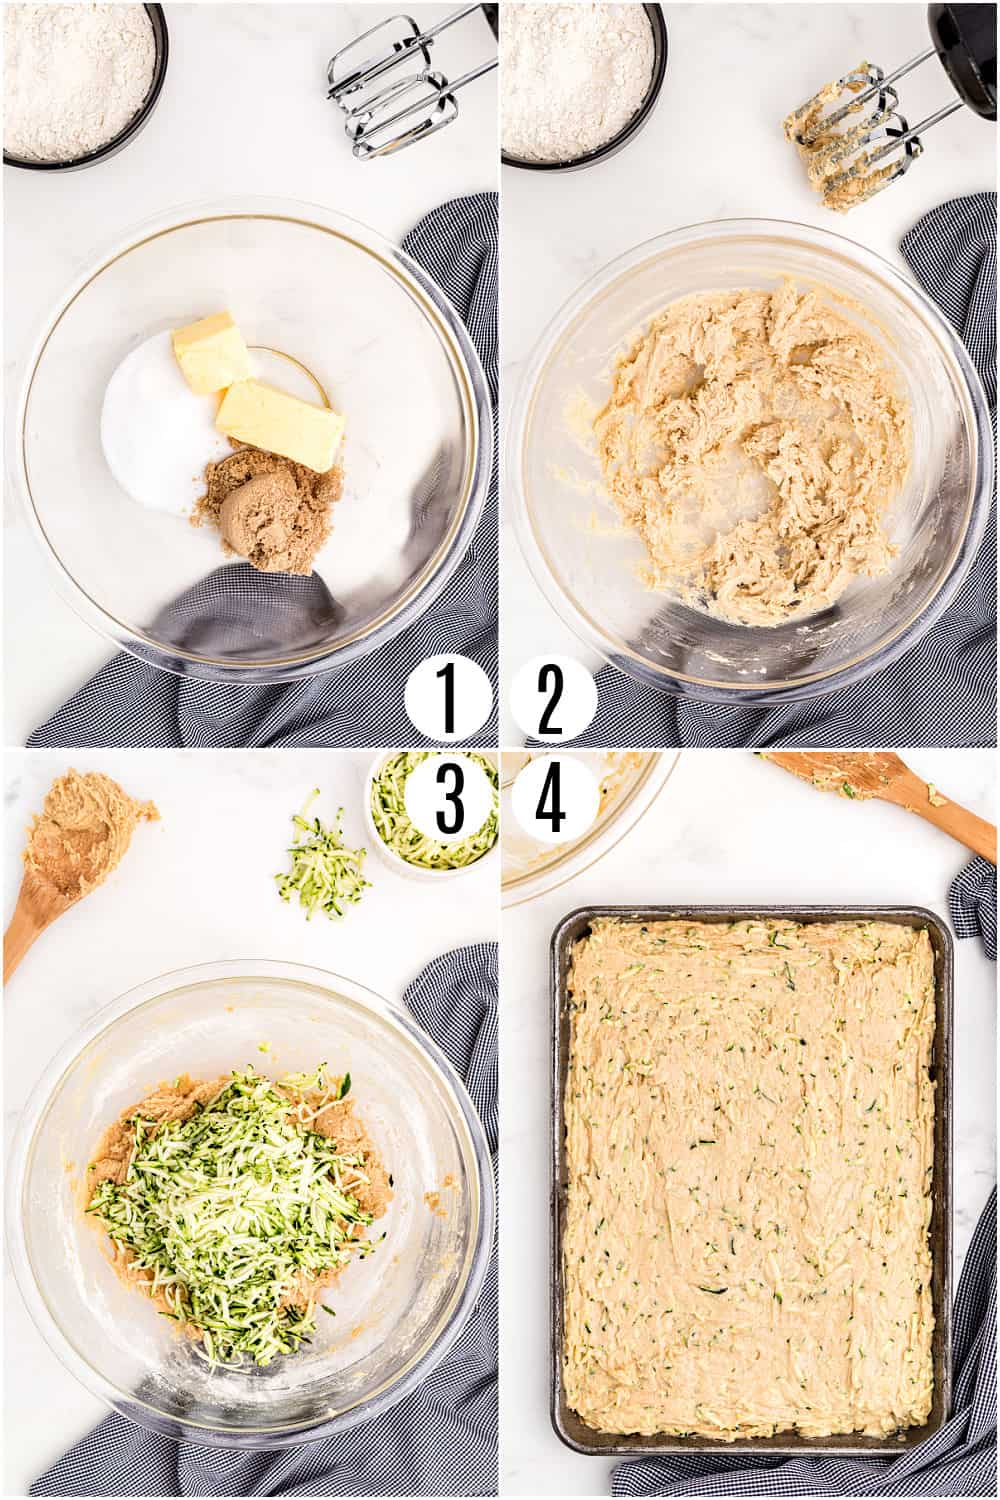 Step by step photos showing how to make cinnamon frosted zucchini bars.